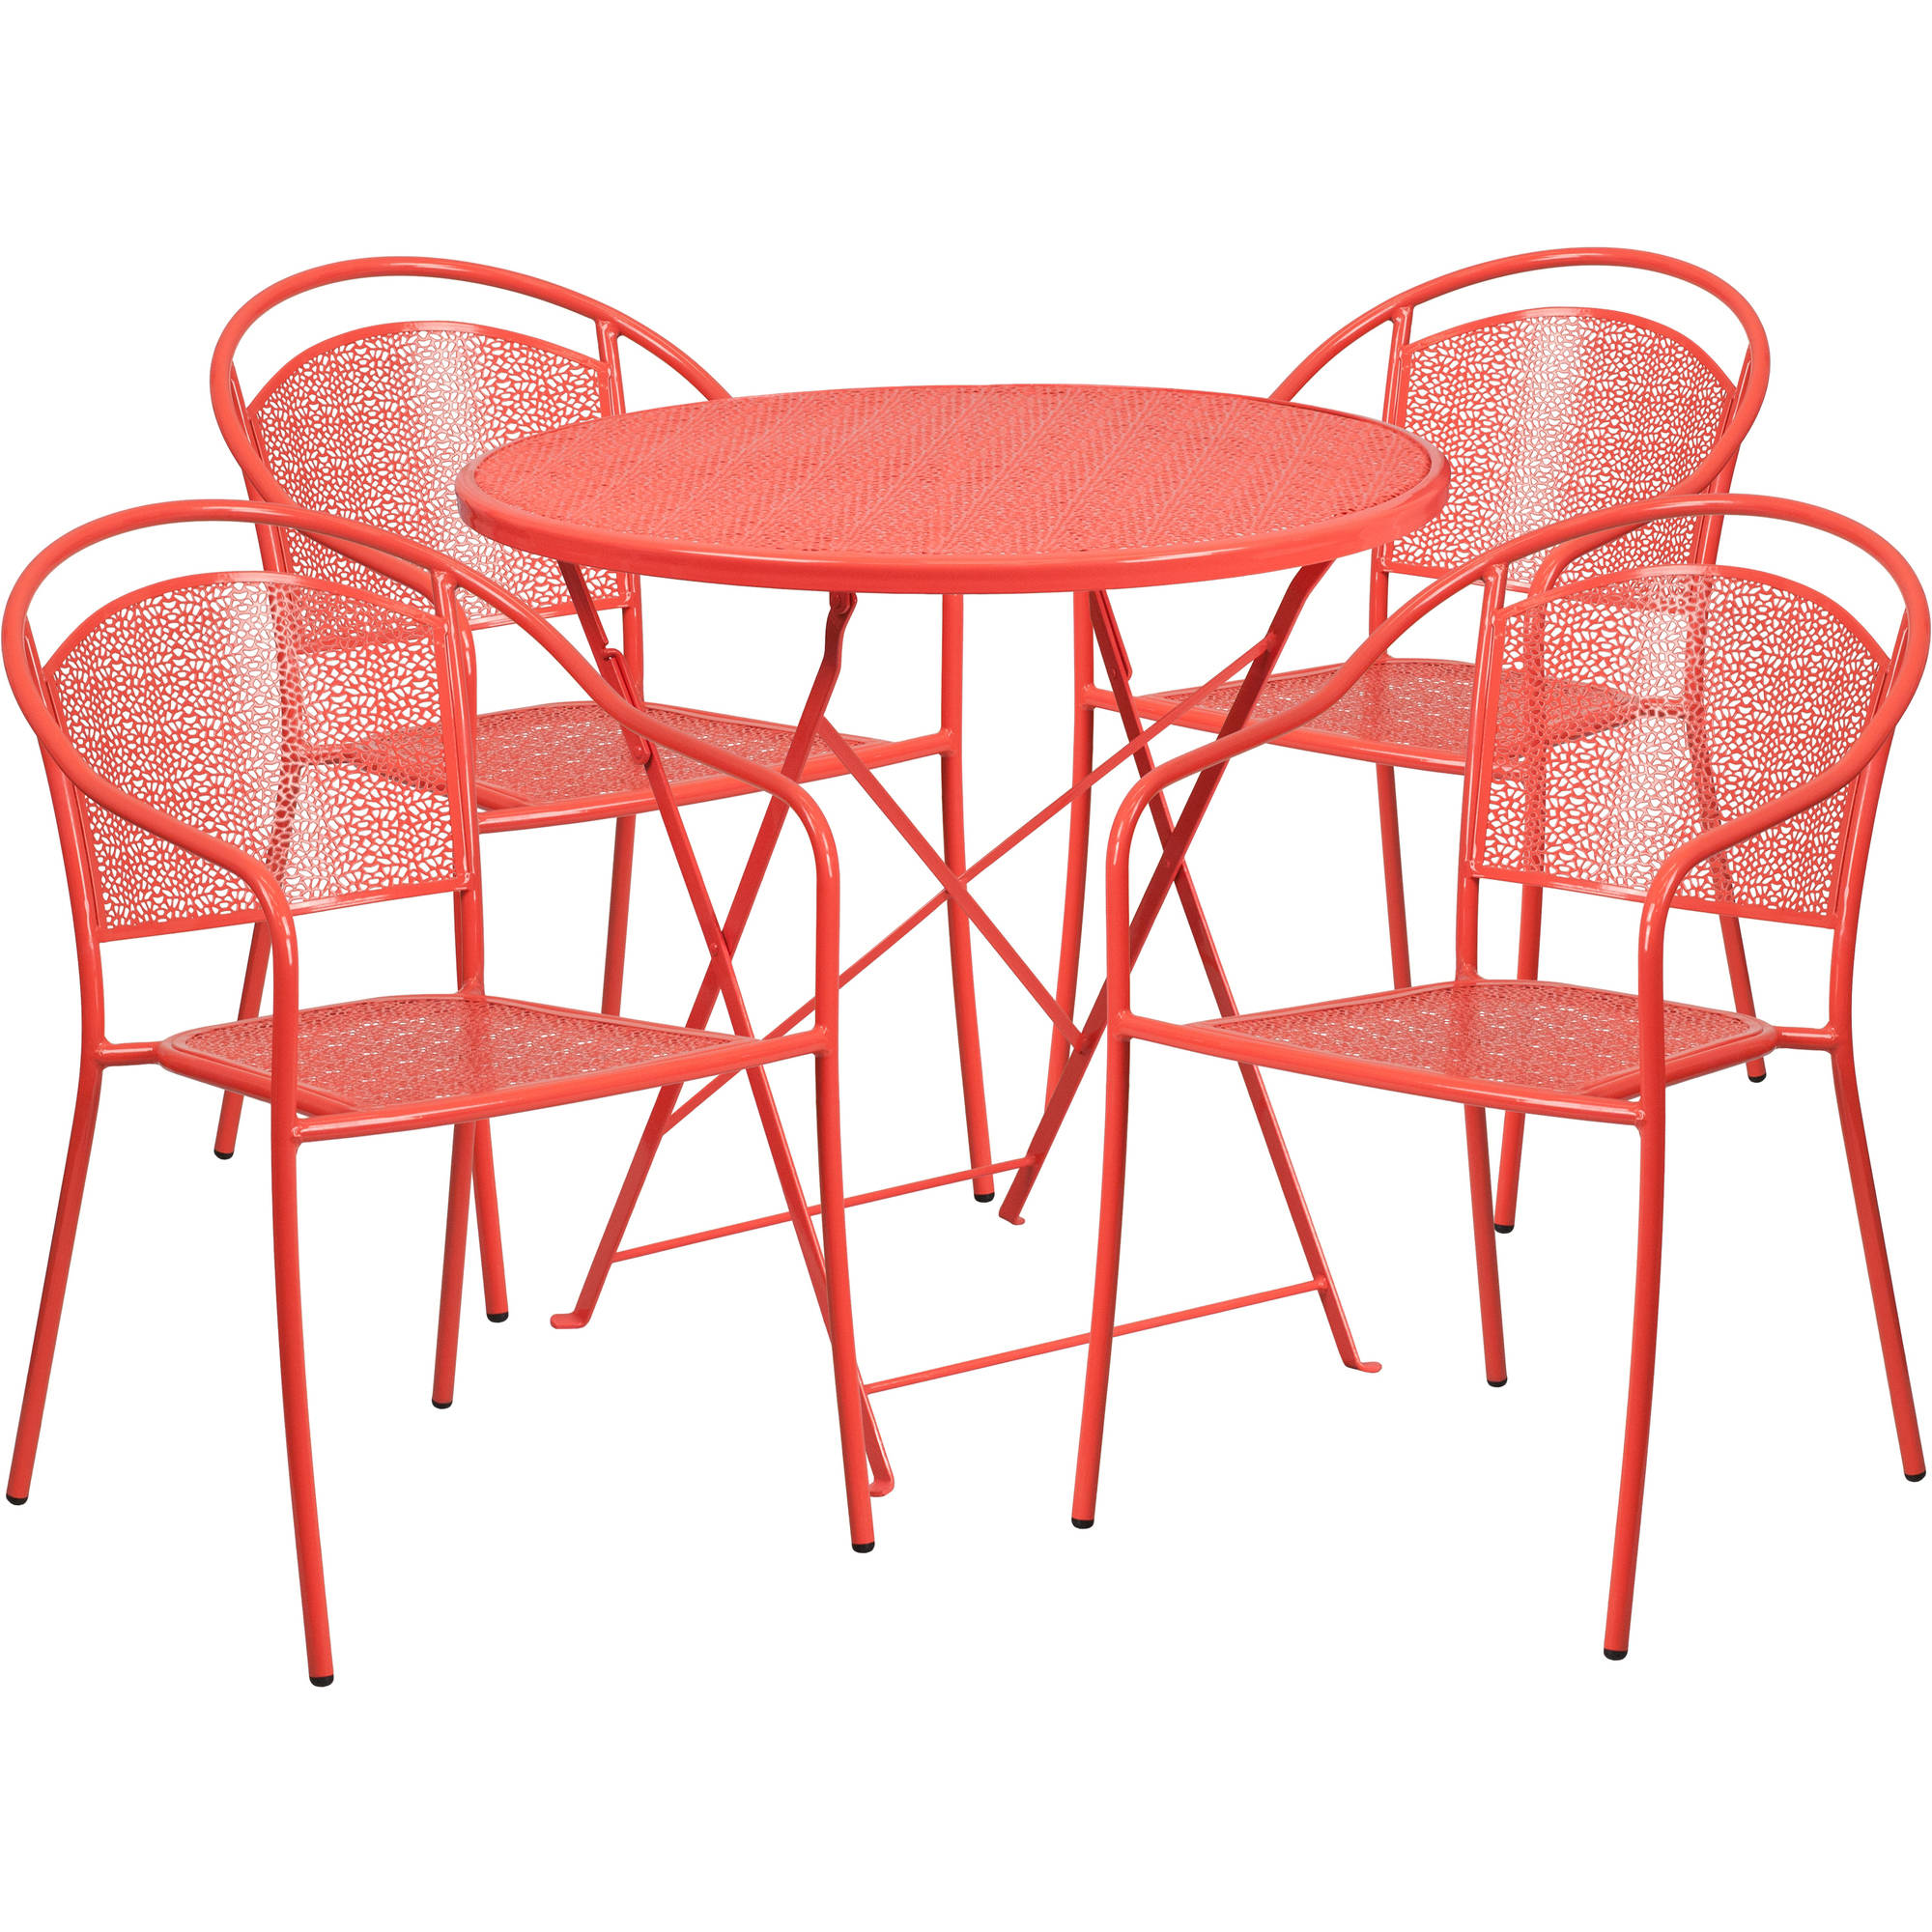 Flash Furniture 30'' Round Indoor-Outdoor Steel Folding Patio Table Set with 4 Round Back Chairs, Multiple Colors